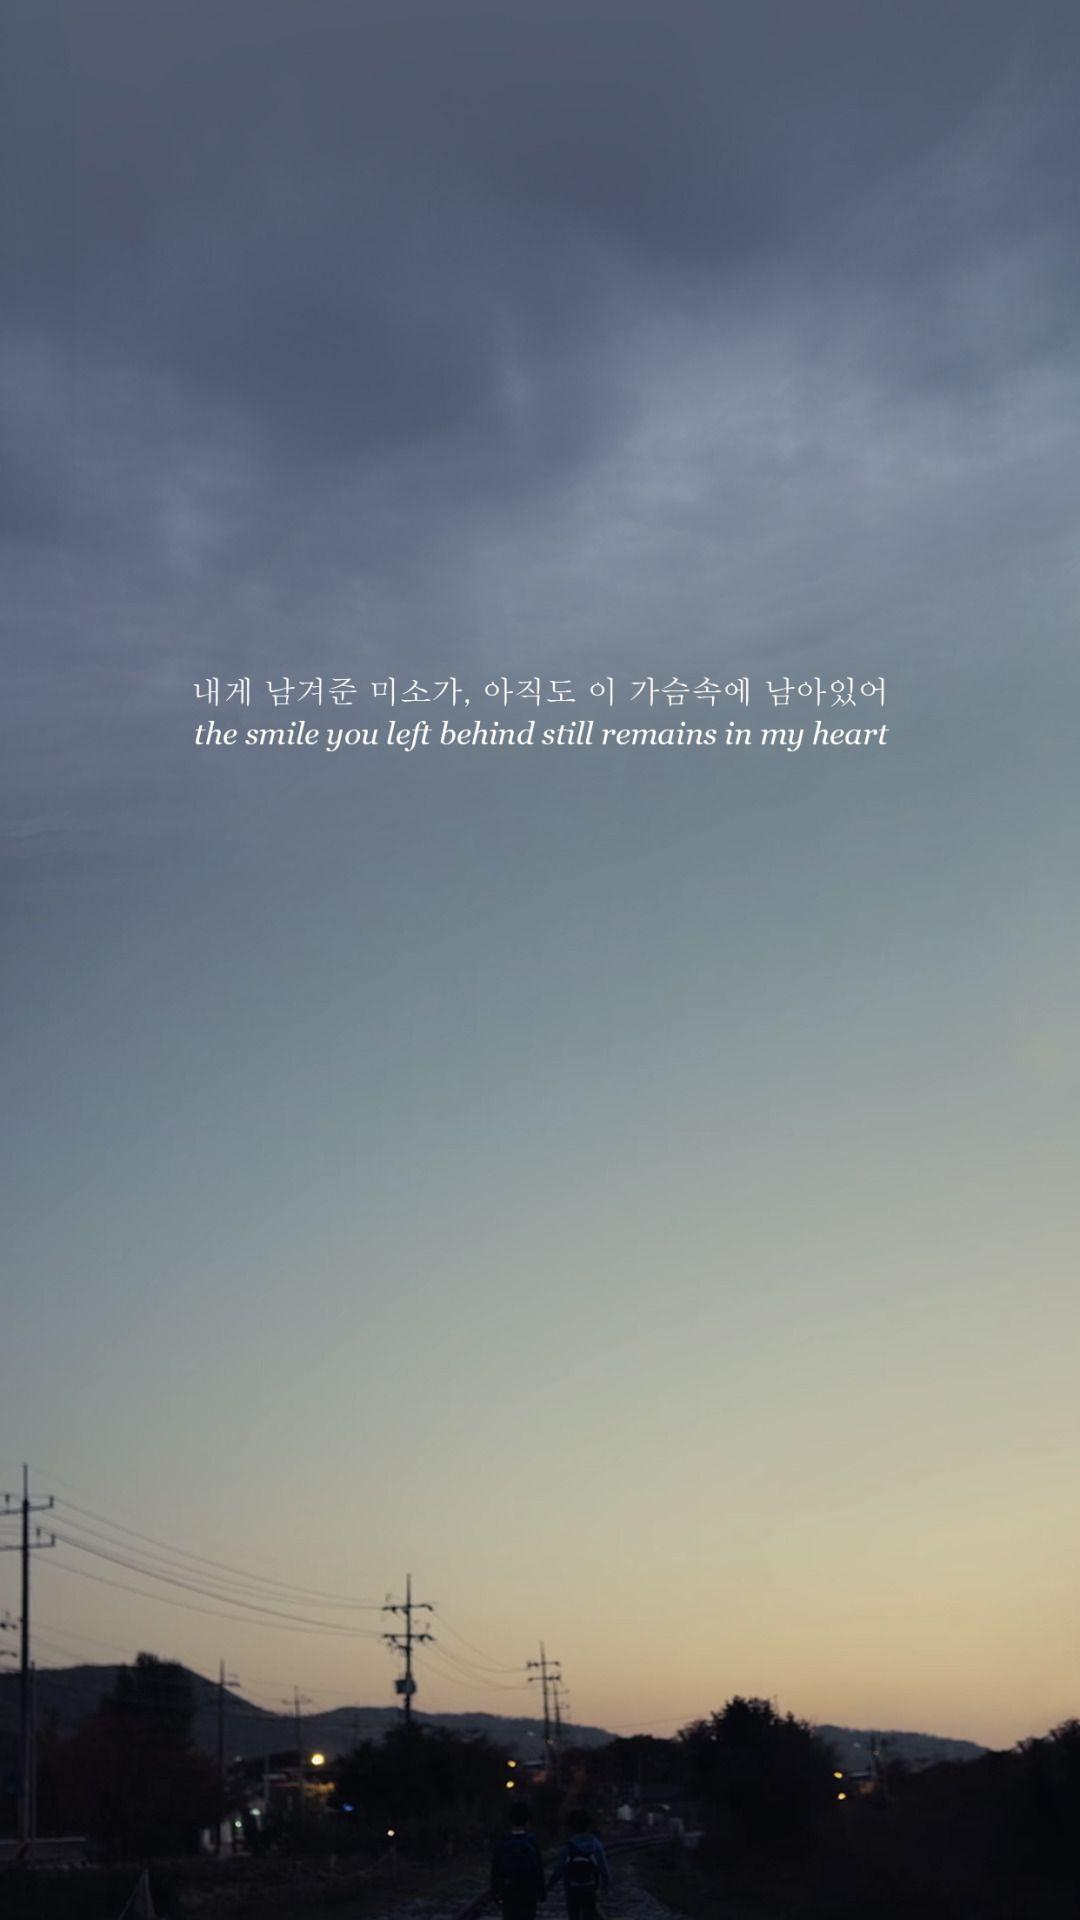 Bts Quotes Wallpaper Iphone Hd Wanna One 2018 Wallpapers Wallpaper Cave